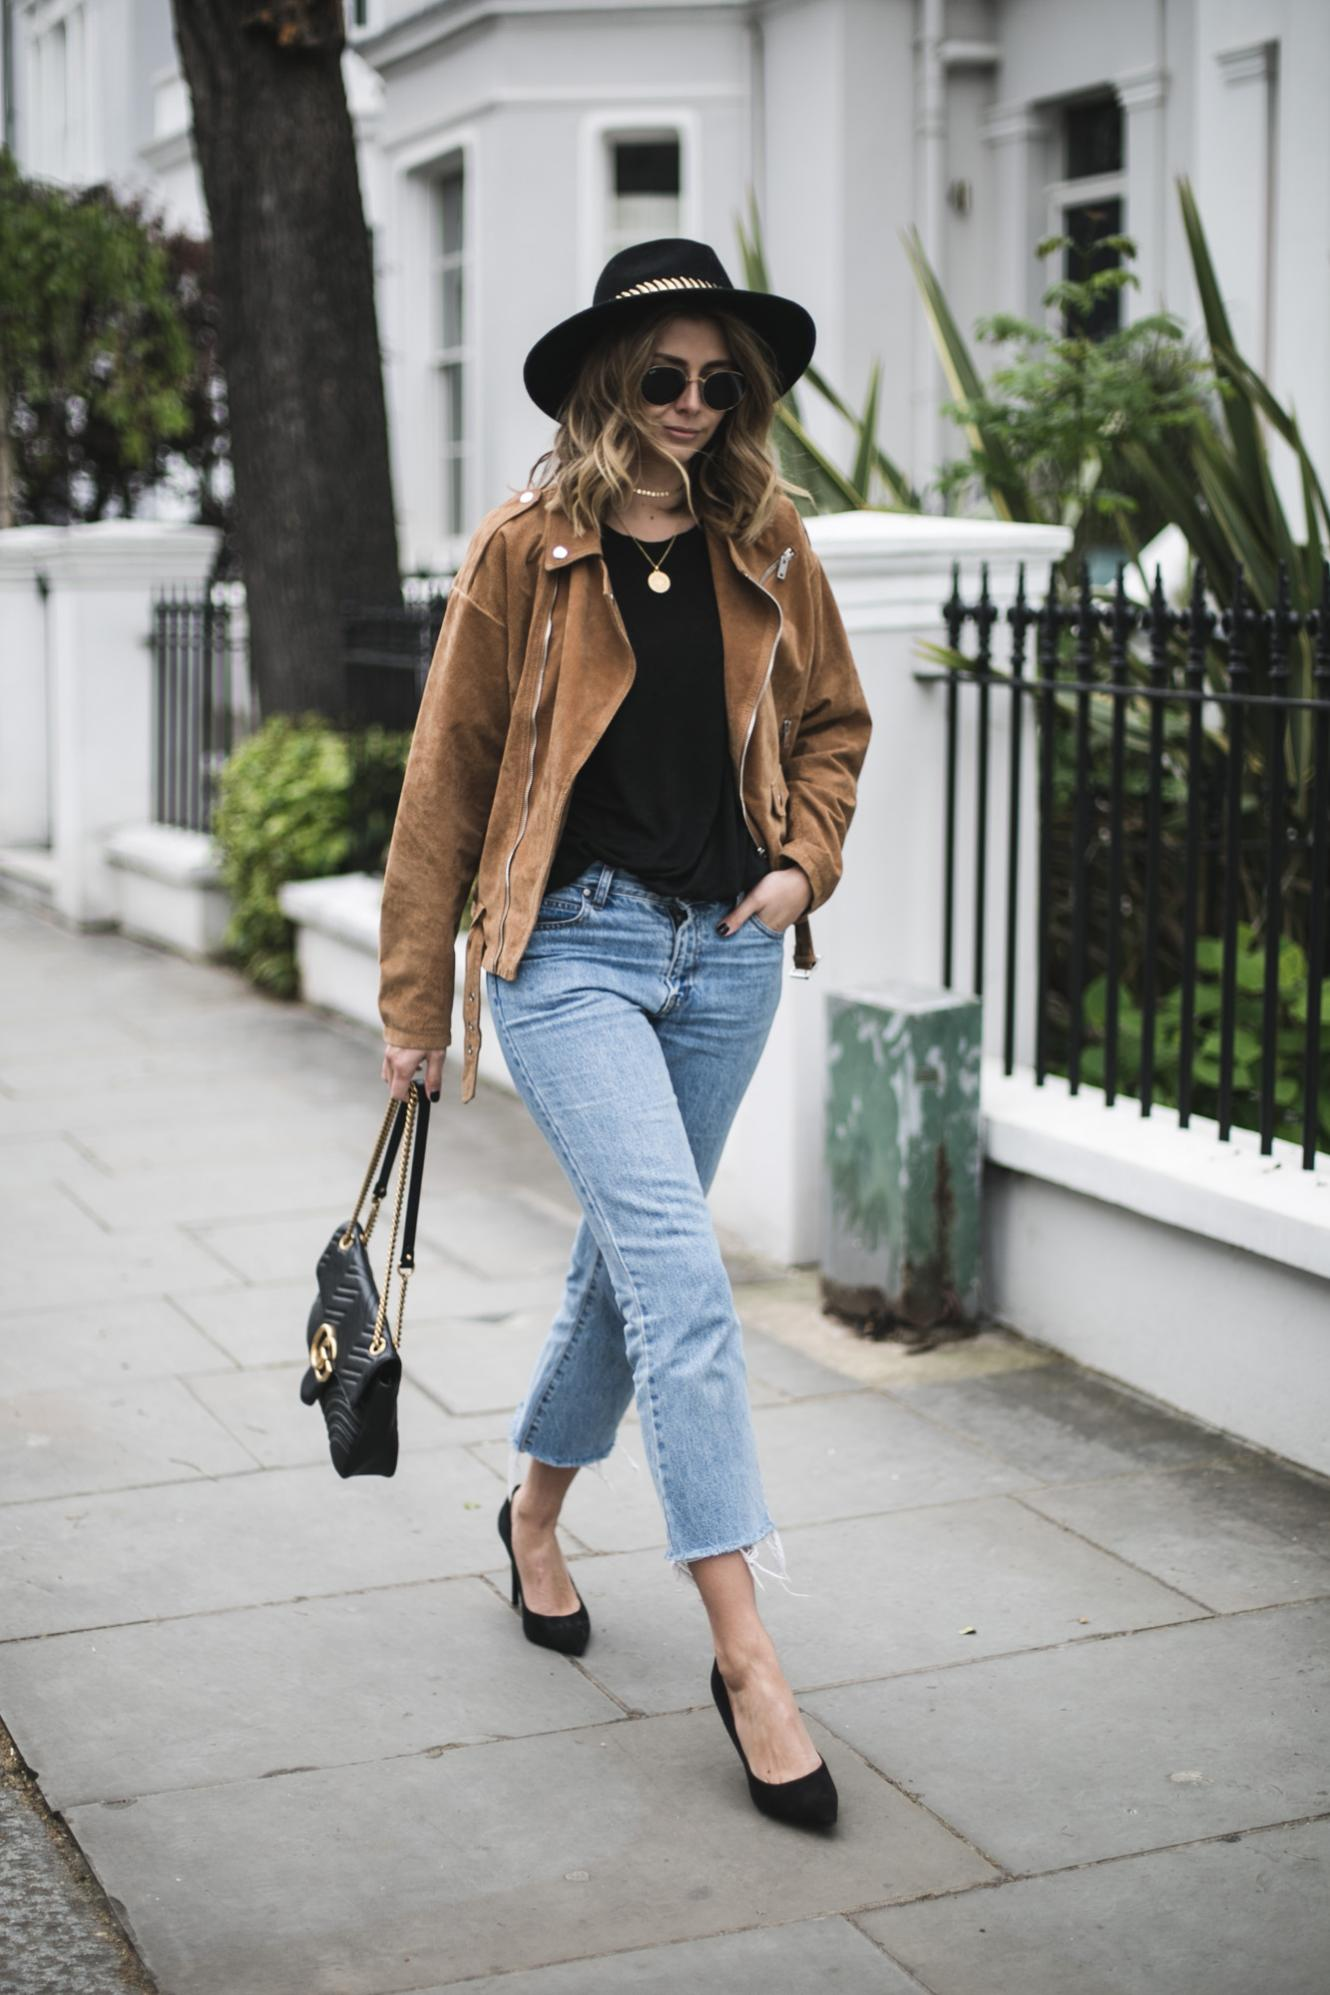 Emma Hill from EJSTYLE wears tan suede biker jacket, black t-shirt, cropped flare raw hem jeans black Gucci Marmont bag, Black suede heeled pumps, black fedora, spring outfit